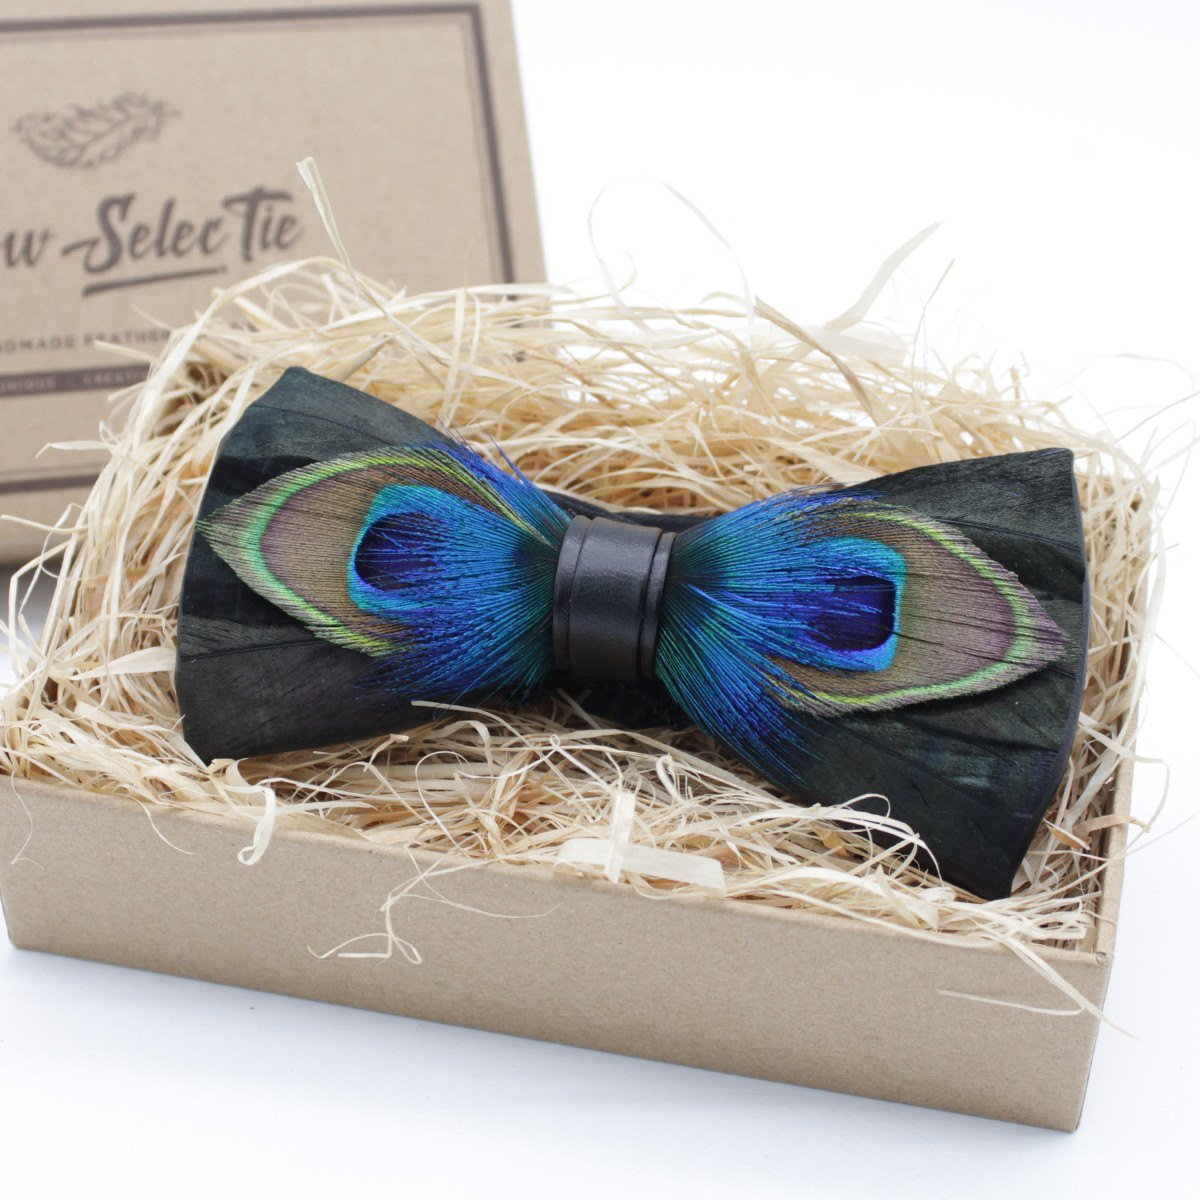 BRACKISH BOW TIES  is a Bow Tie brand made in Charleston, SC.  No dyes are used, giving each tie a unique coloring. The feathers are all-natural and sustainably sourced. Each tie arrives in a hand-branded, pine gift box. including a list of the feathers used and instructions on how to care for your tie.  www.brackishbowties.com